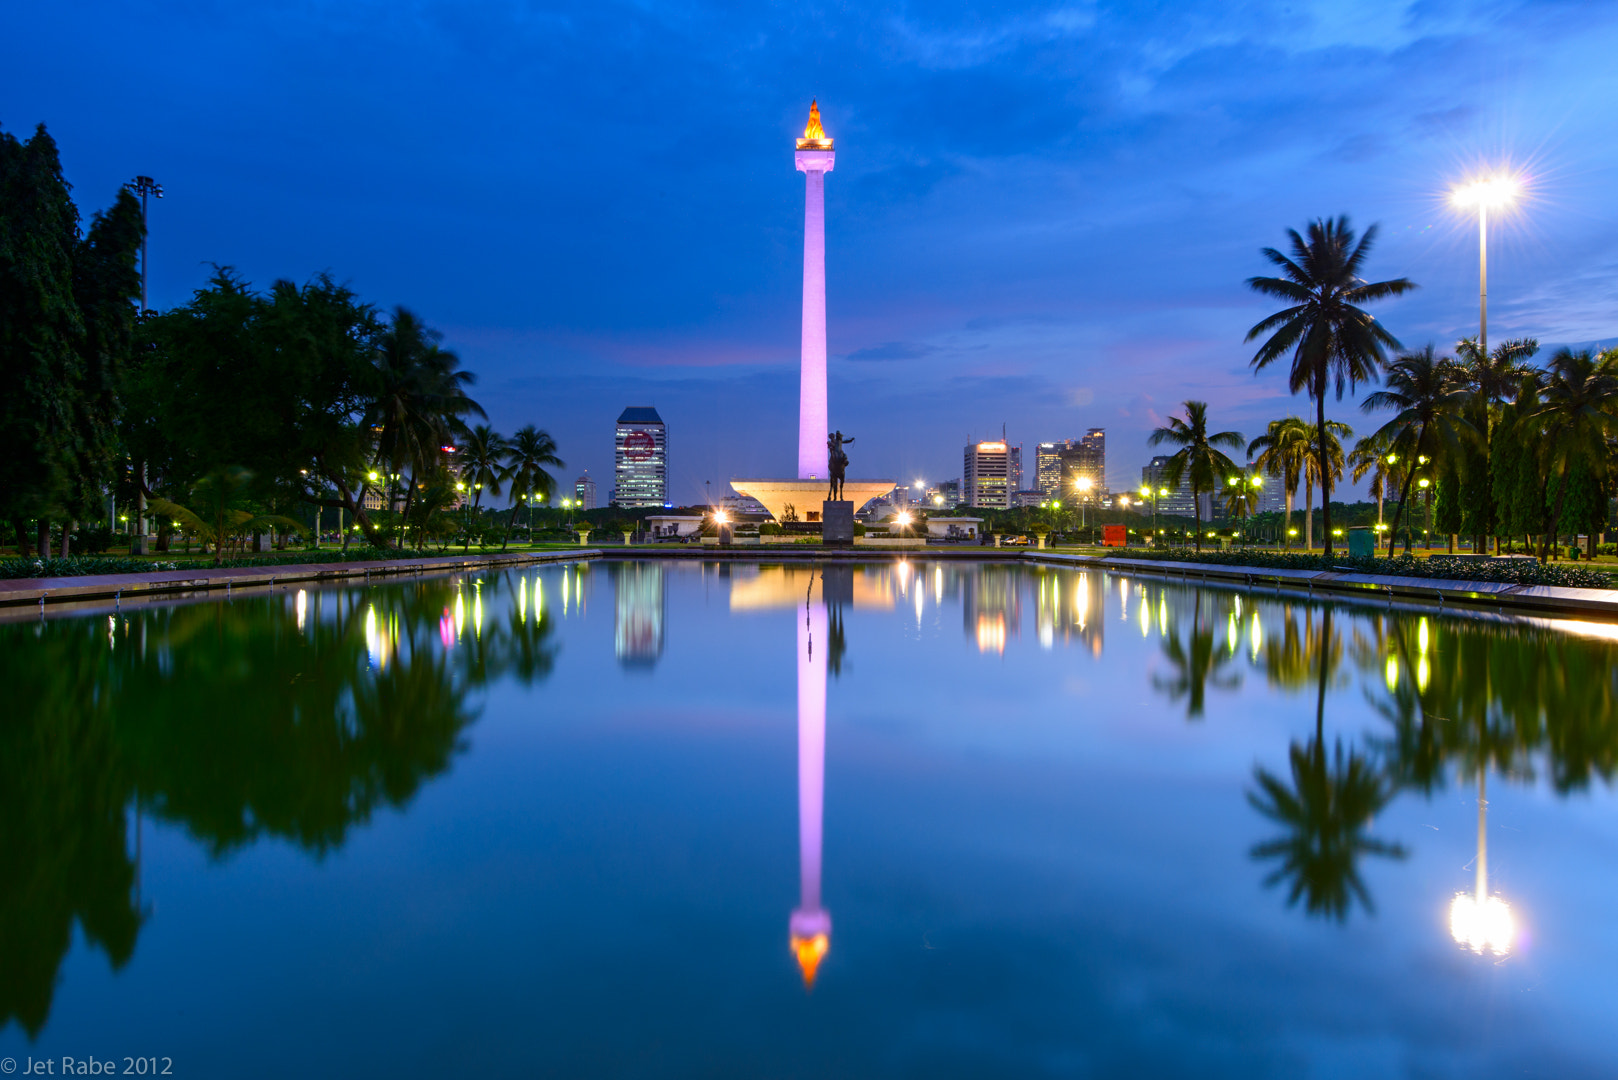 Photograph Jakarta City Park by Jet Rabe on 500px